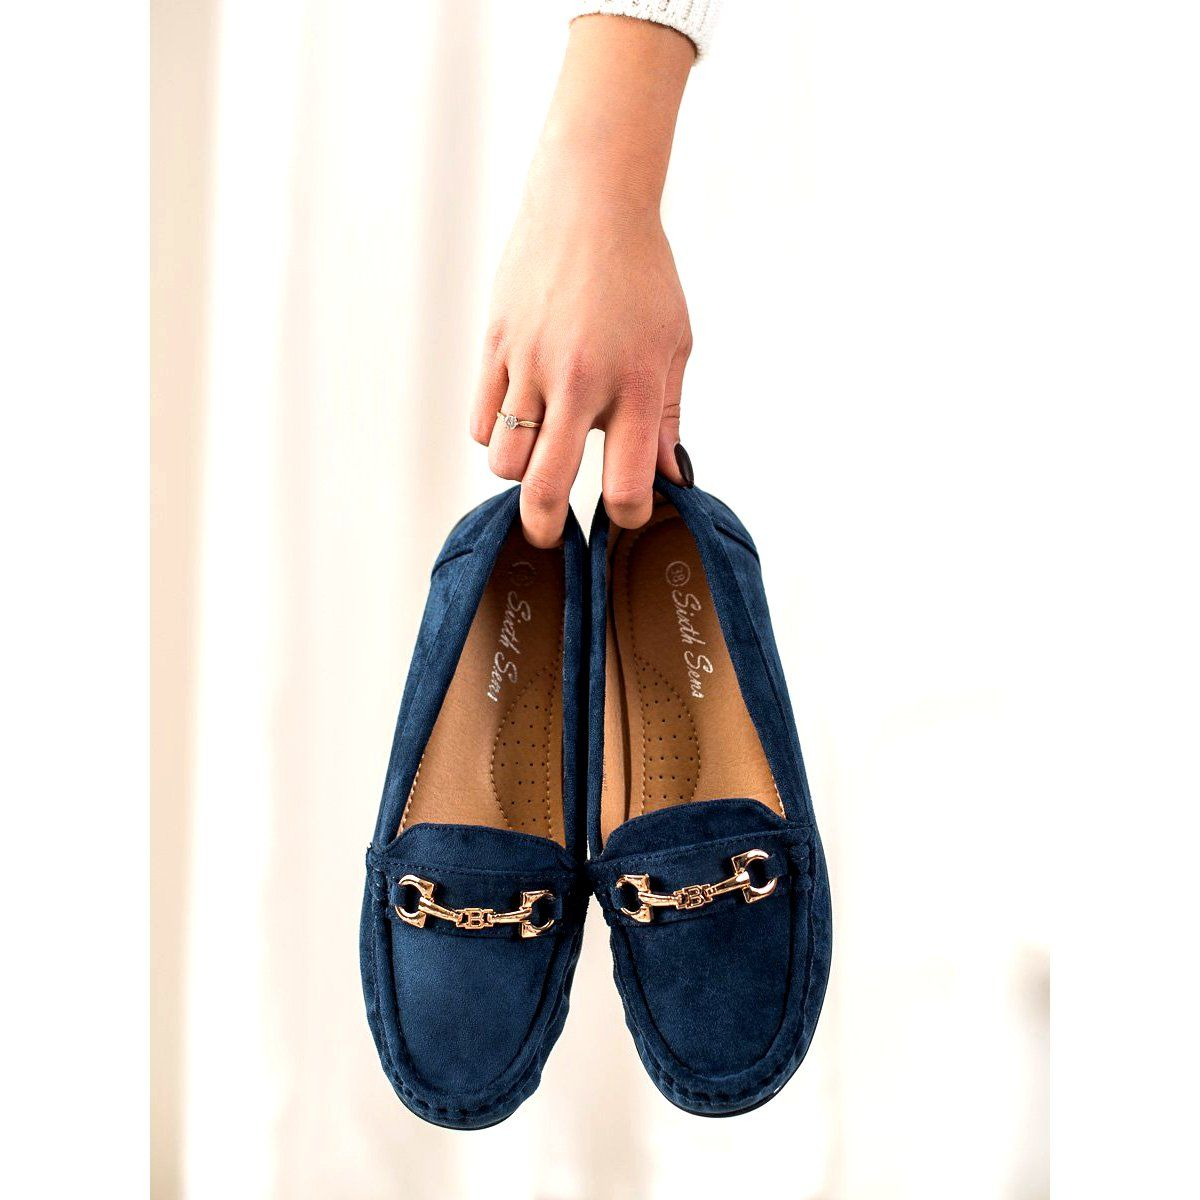 Cornflower Blue Nubuck Moccasin Womens Boots Ankle Women Shoes Stunning Shoes